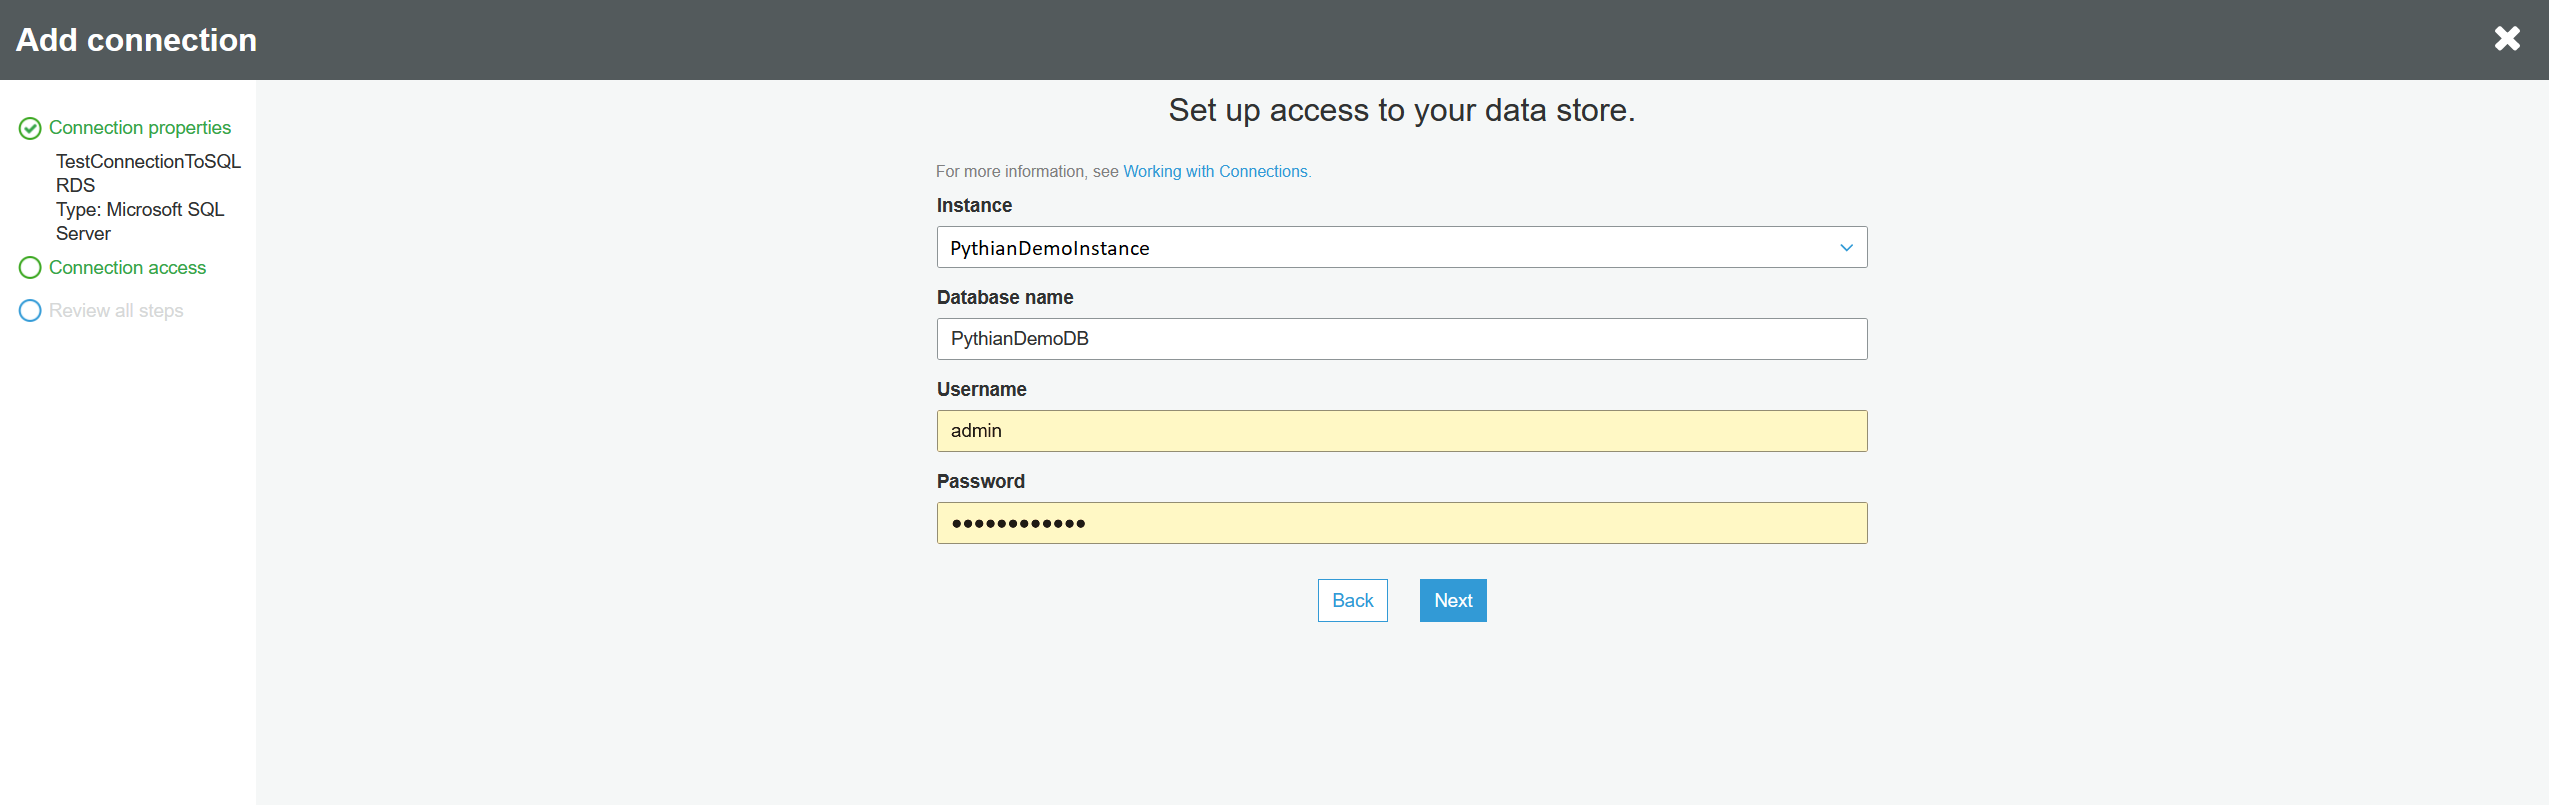 Selecting instance and database.